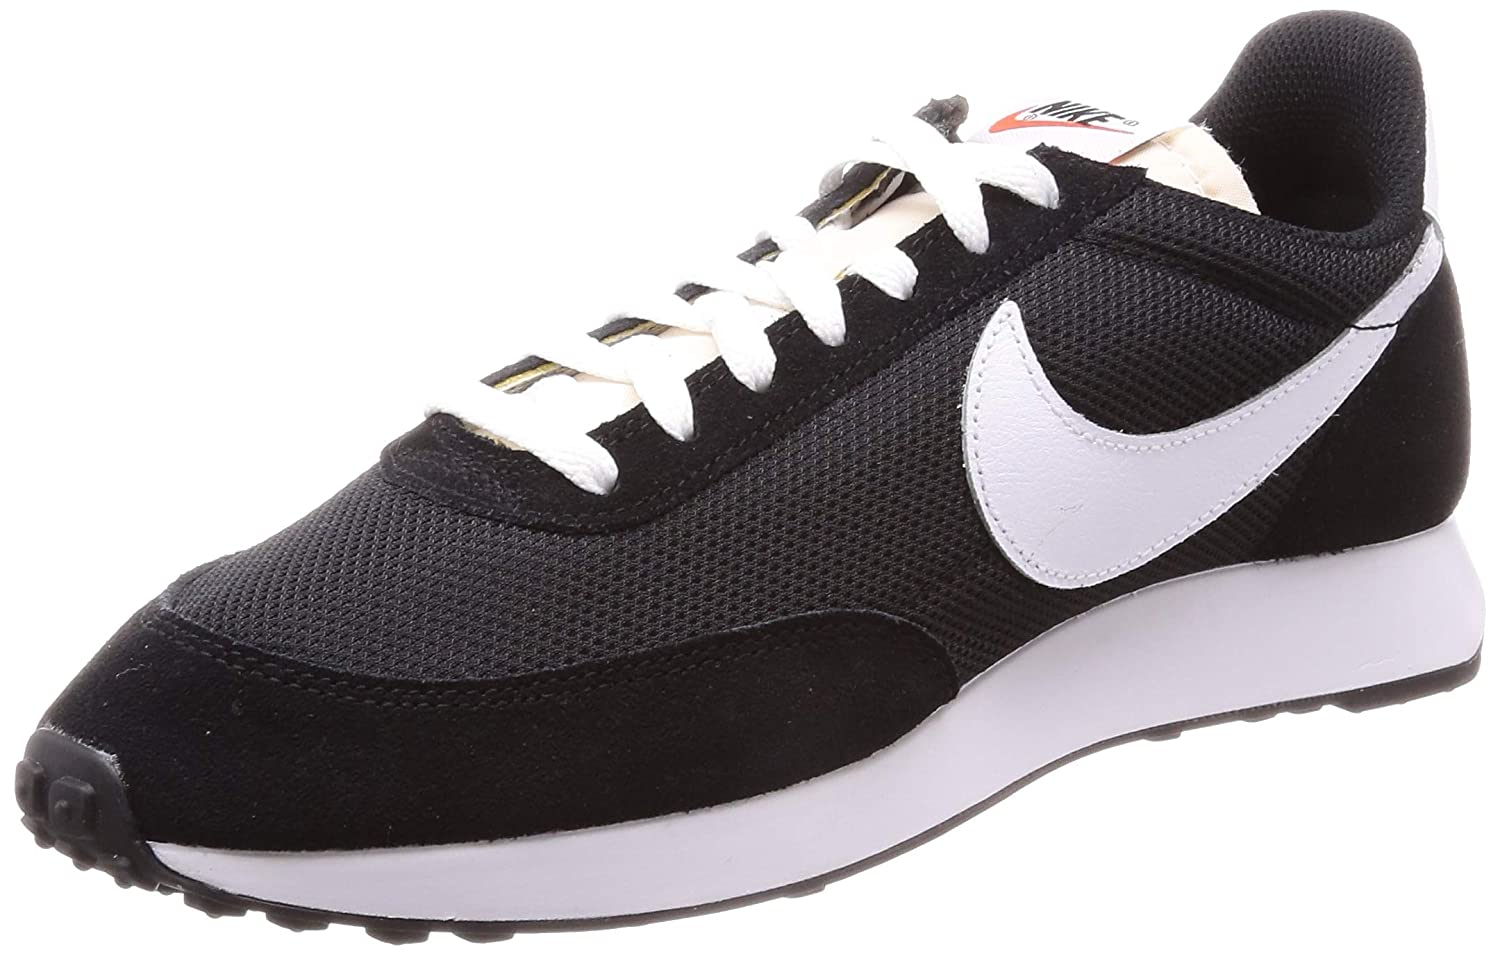 b696fac938 Nike Men's Air Tailwind 79 Track & Field Shoes: Amazon.co.uk: Shoes & Bags